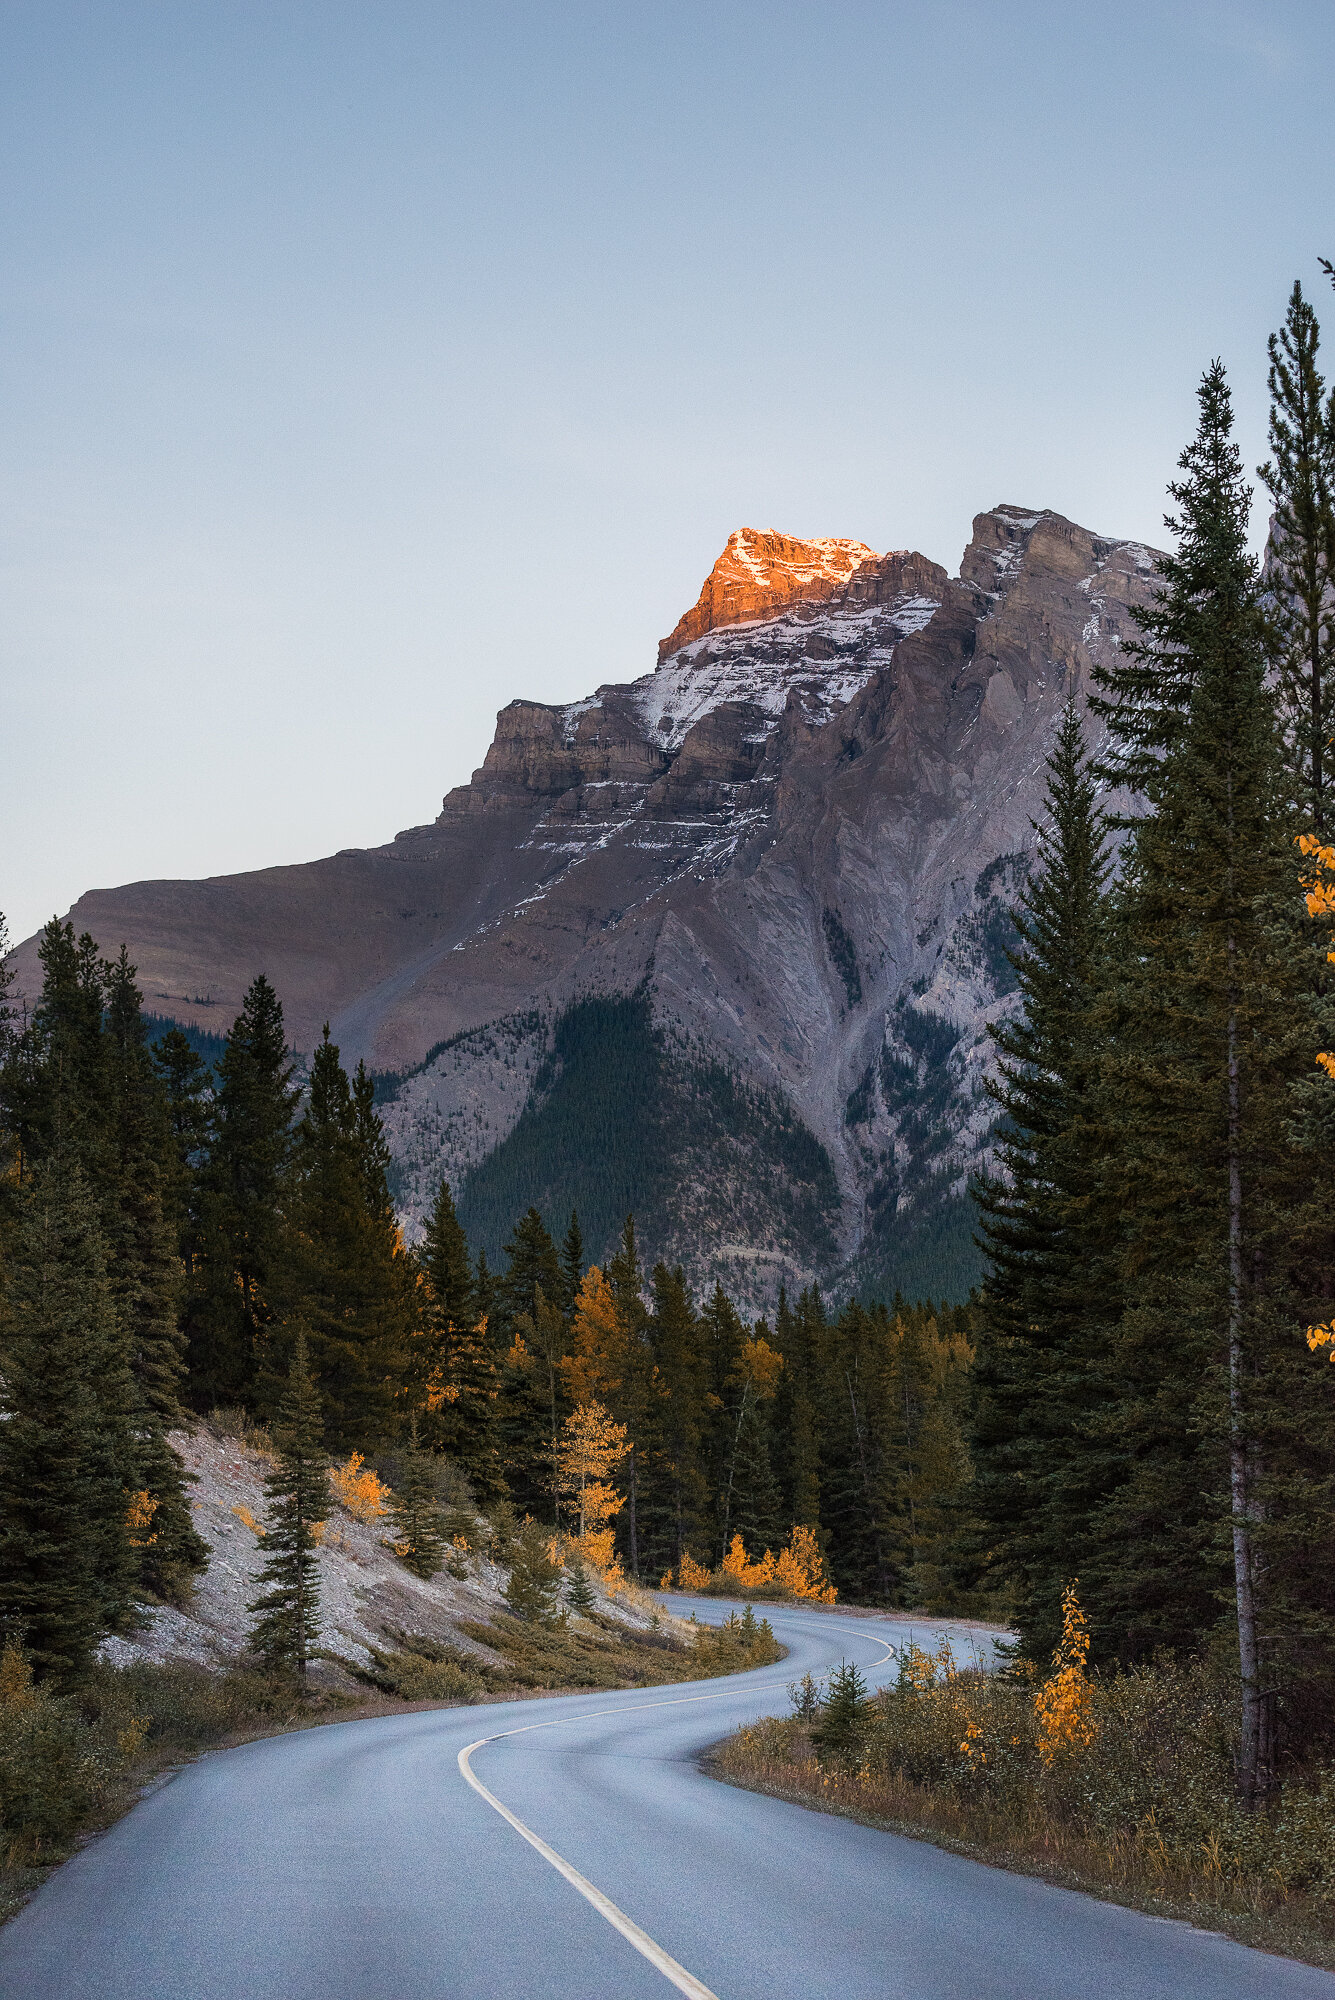 Banff Photography: 'Down the Winding Road'